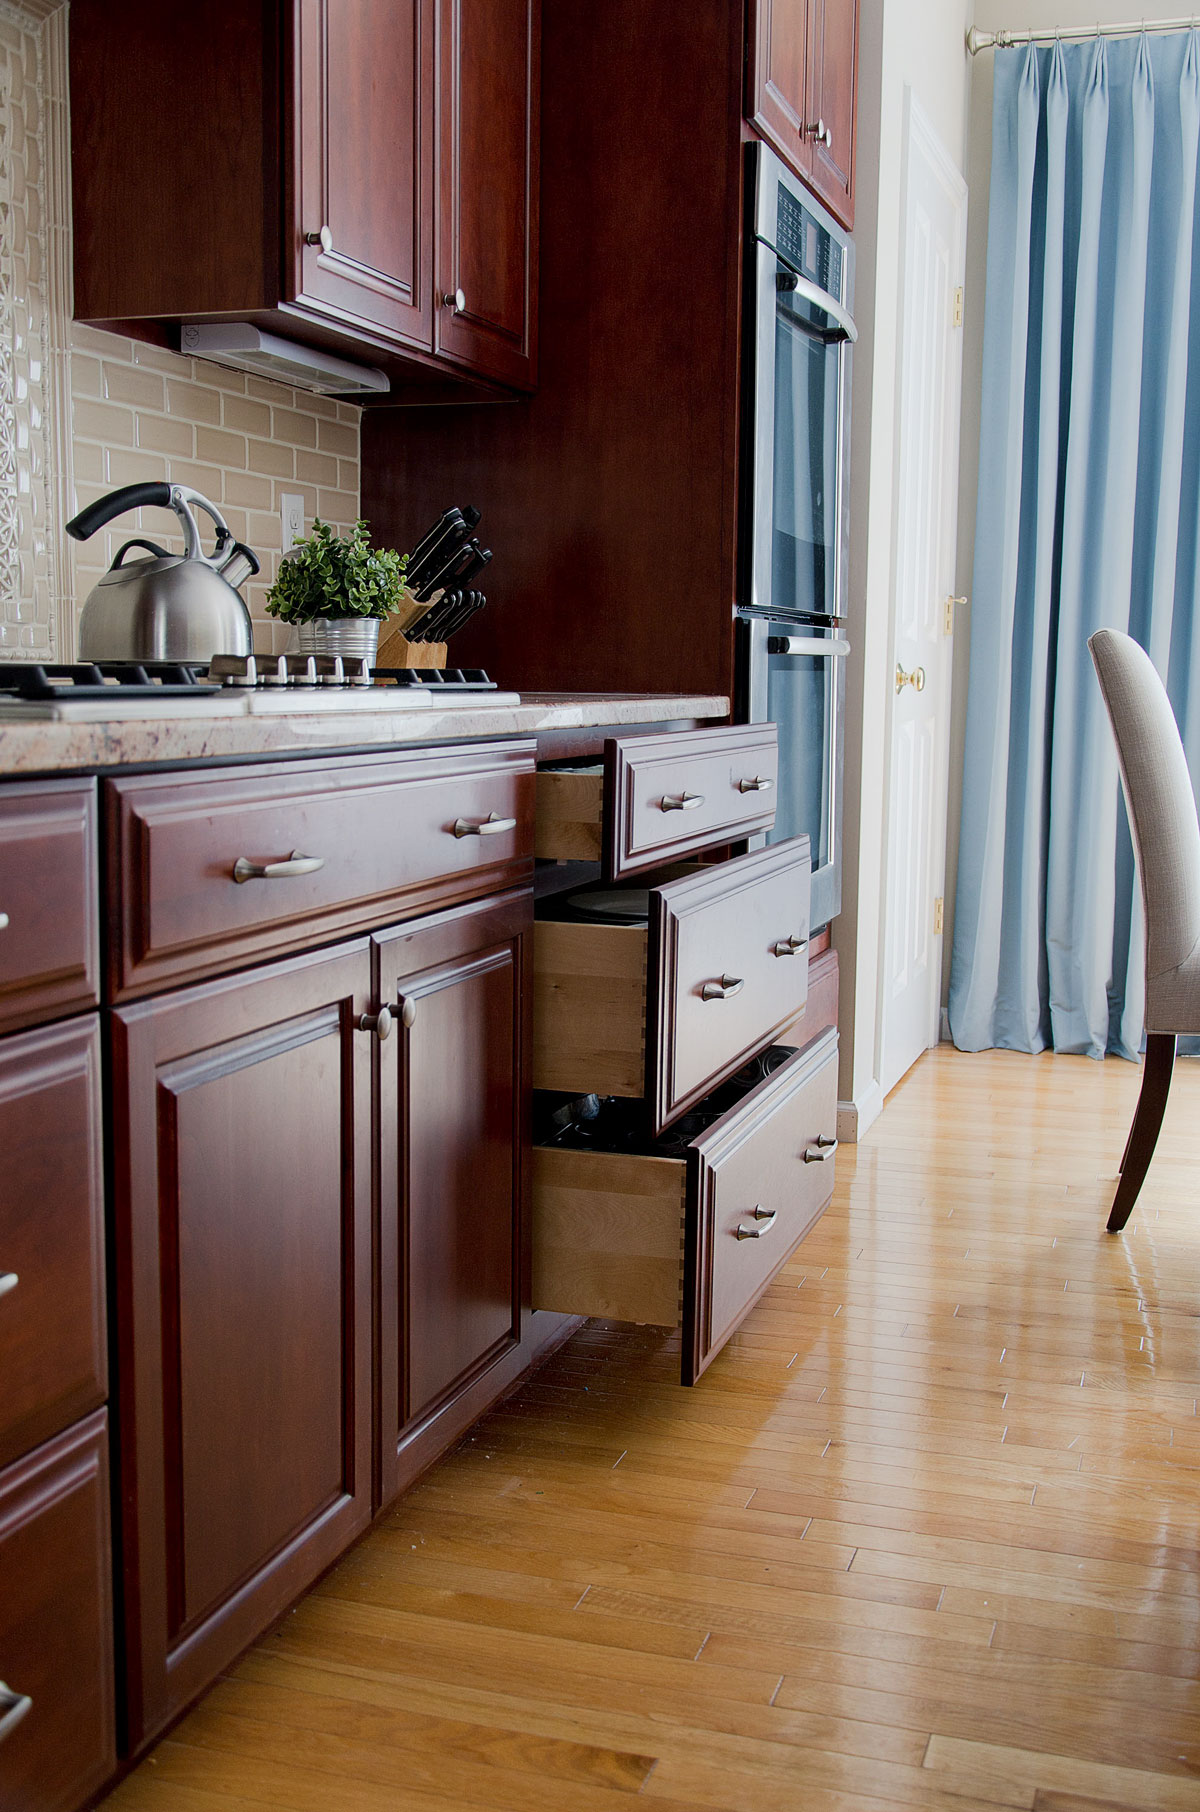 Plymouth MA kitchen interior design by Susan Curtis Interiors